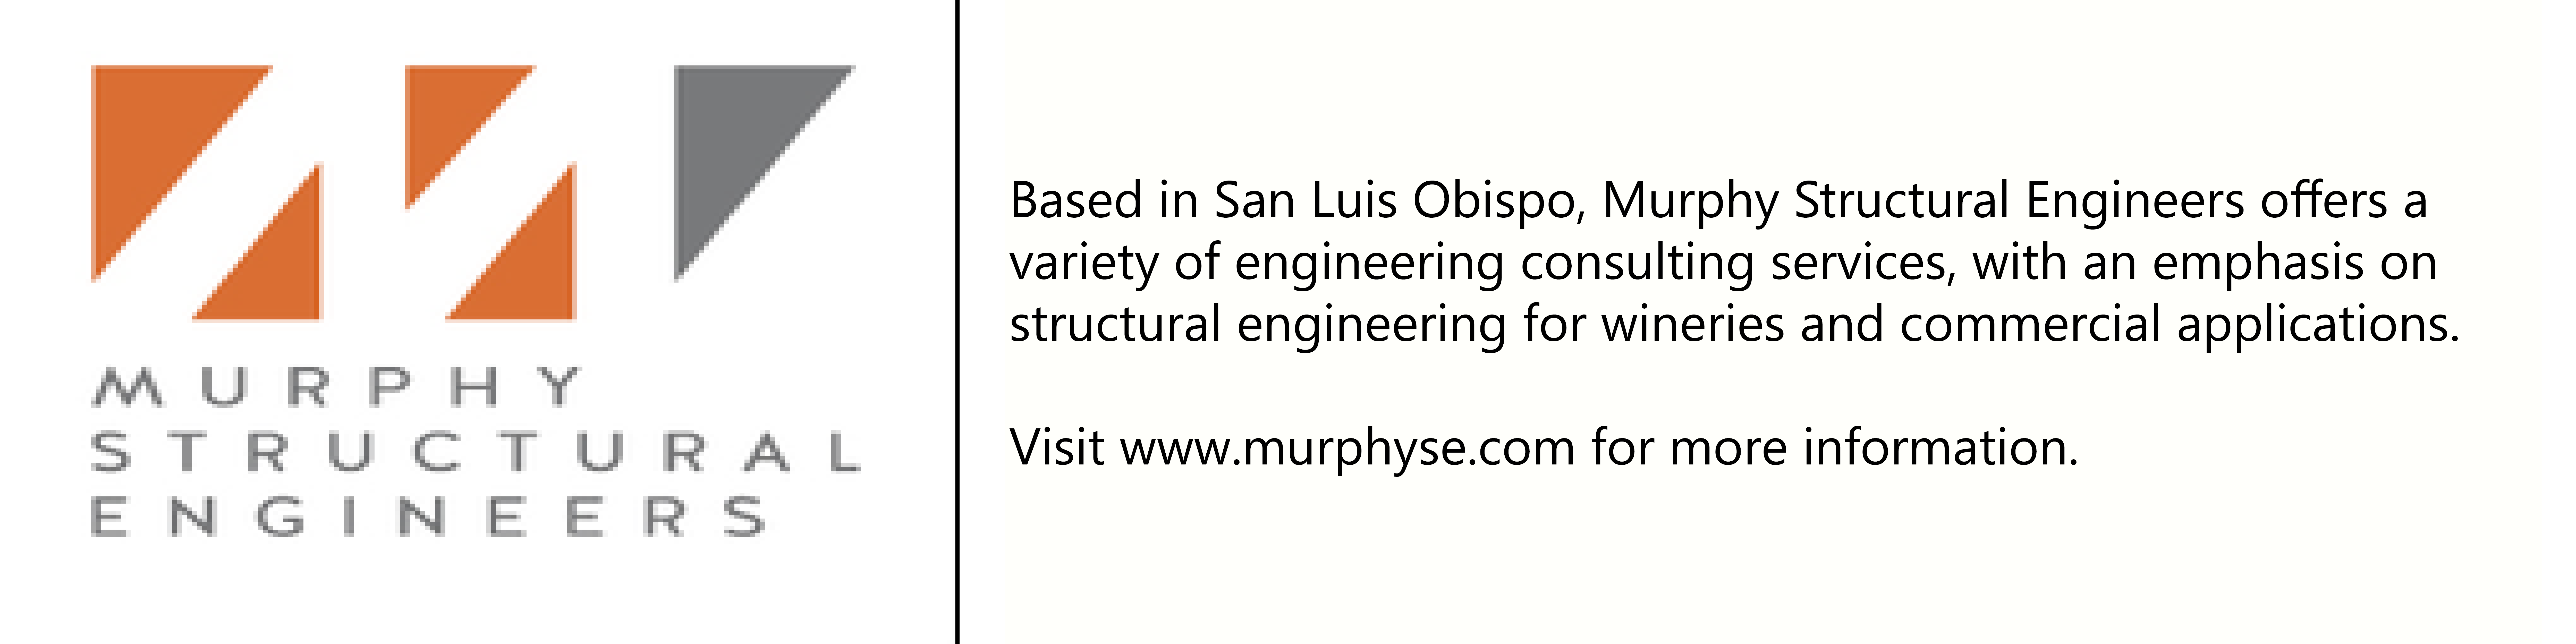 Murphy Structural Engineers logo with description of company